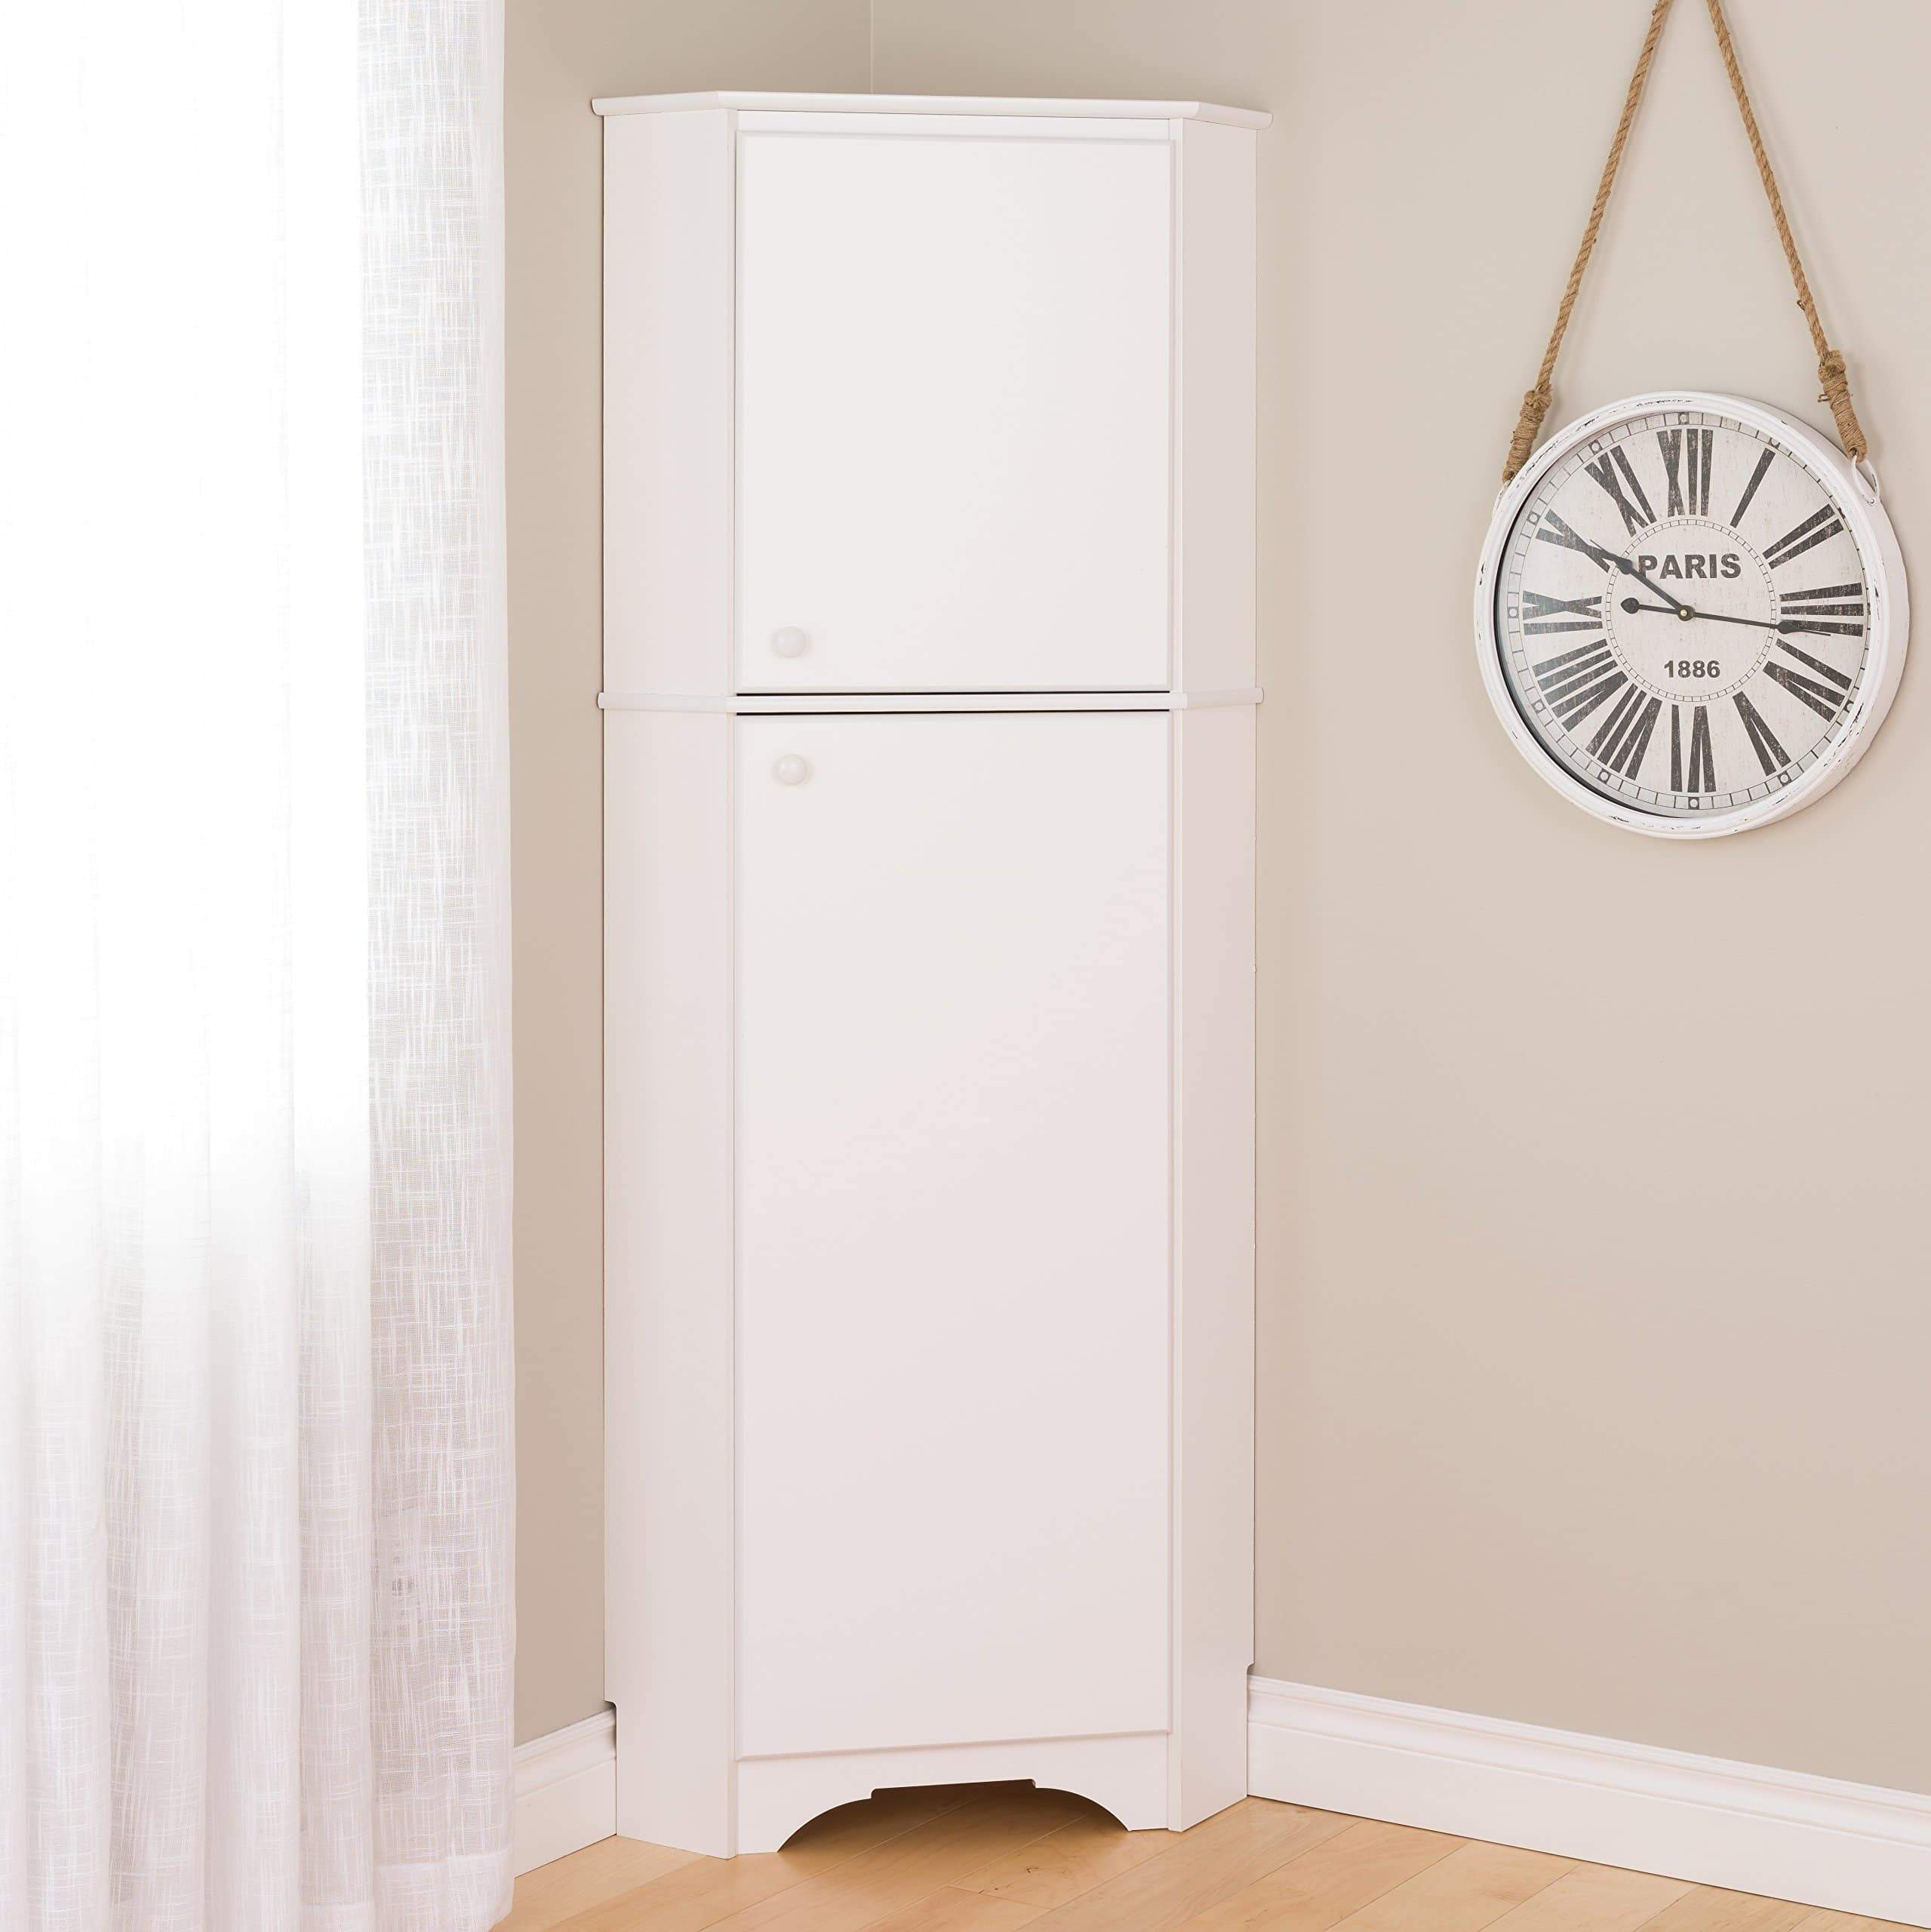 Best prepac wscc 0605 1 elite home corner storage cabinet tall 2 door white